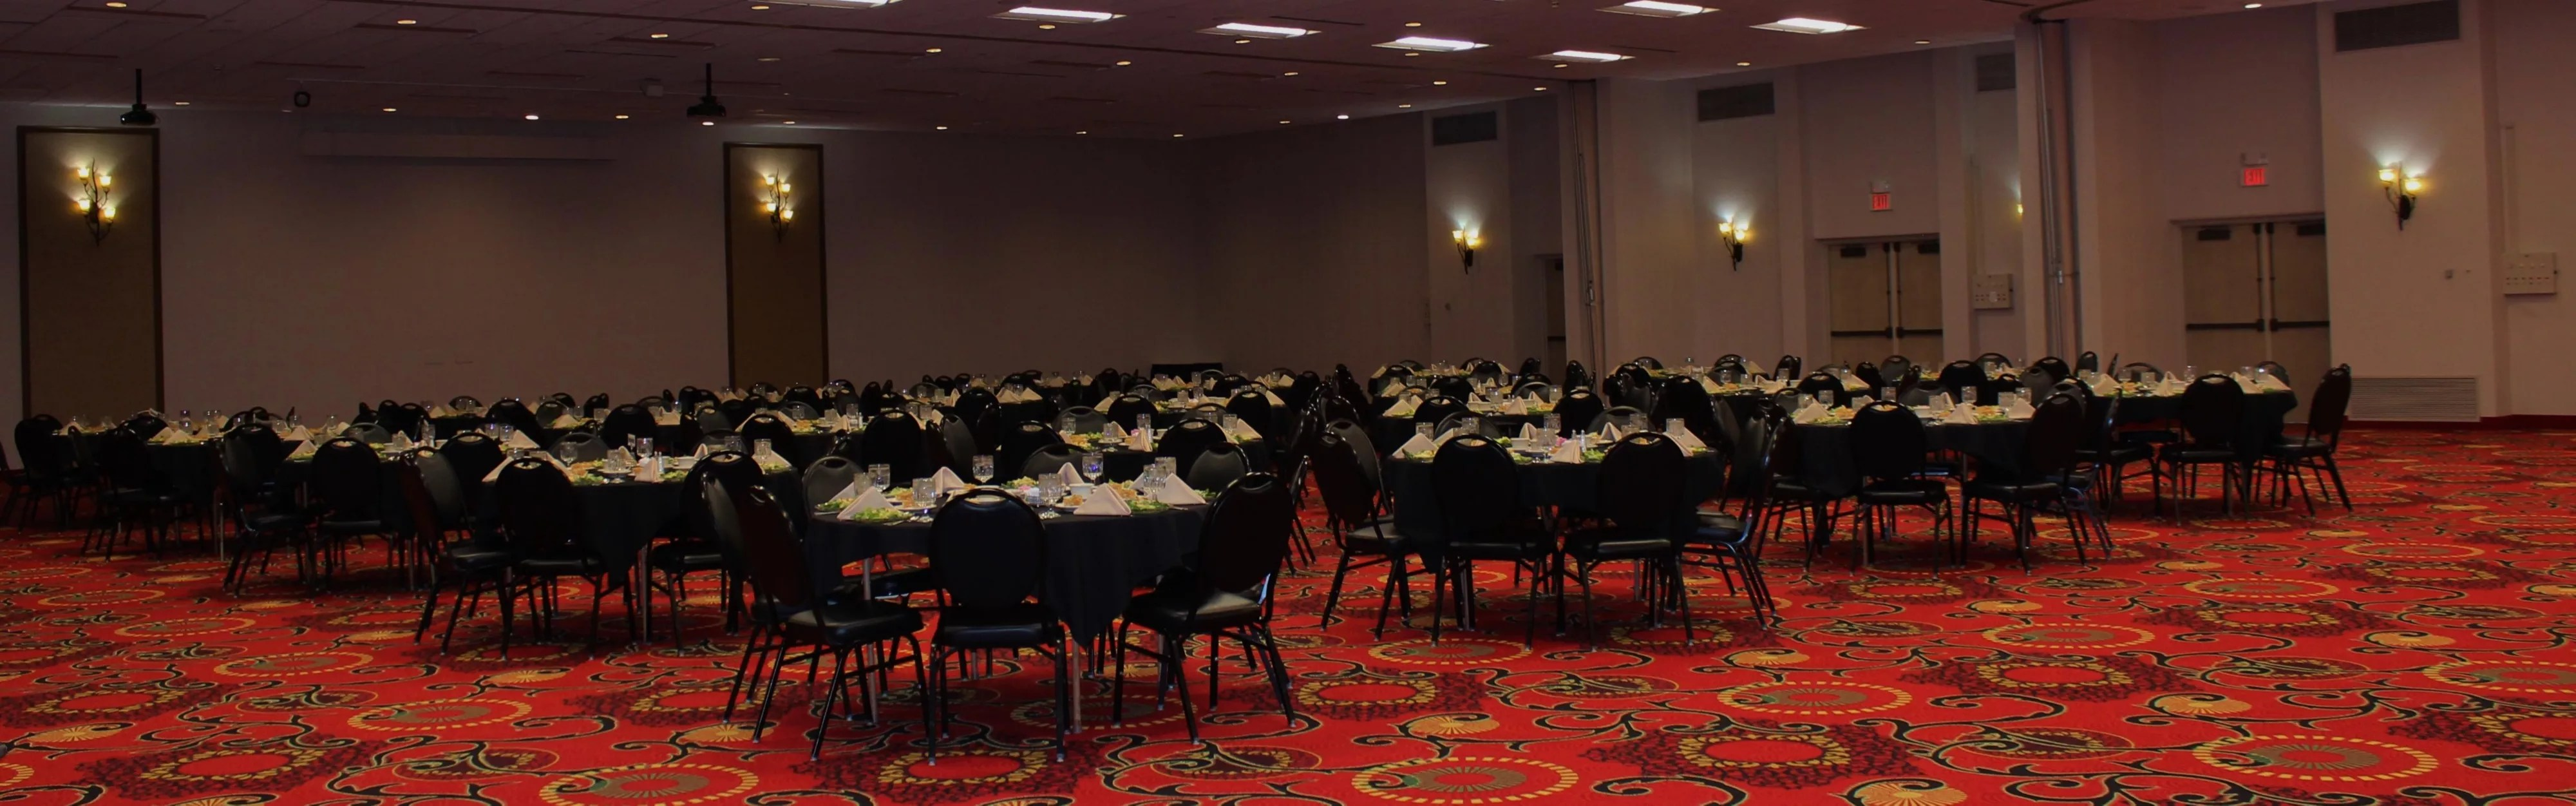 Holiday Inn Des Moines Airport Conf Center Hotel Groups